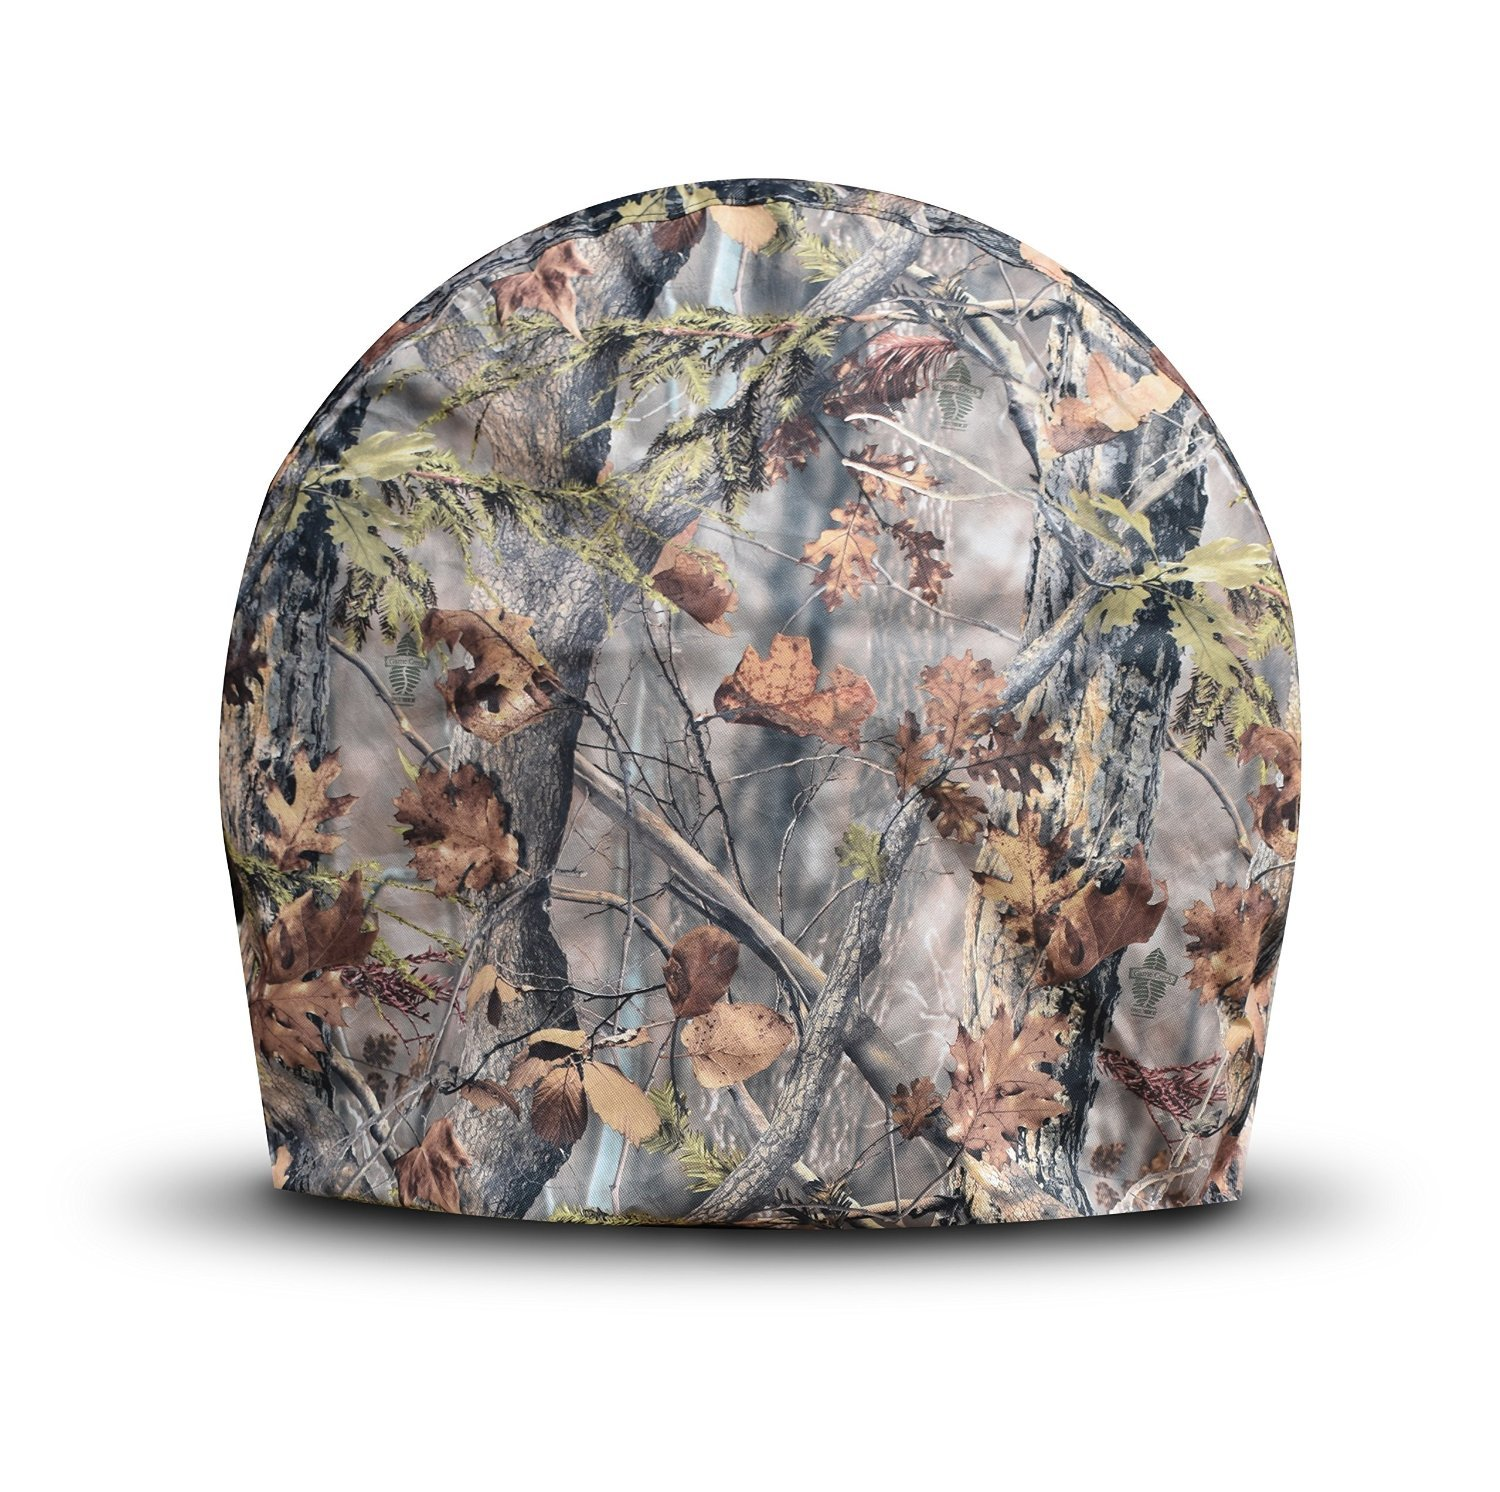 ADCO 3654 Camouflage #4 Game Creek Oaks Tyre Gard Wheel Cover, (Set of 2) (Fits 24''-26'') by ADCO